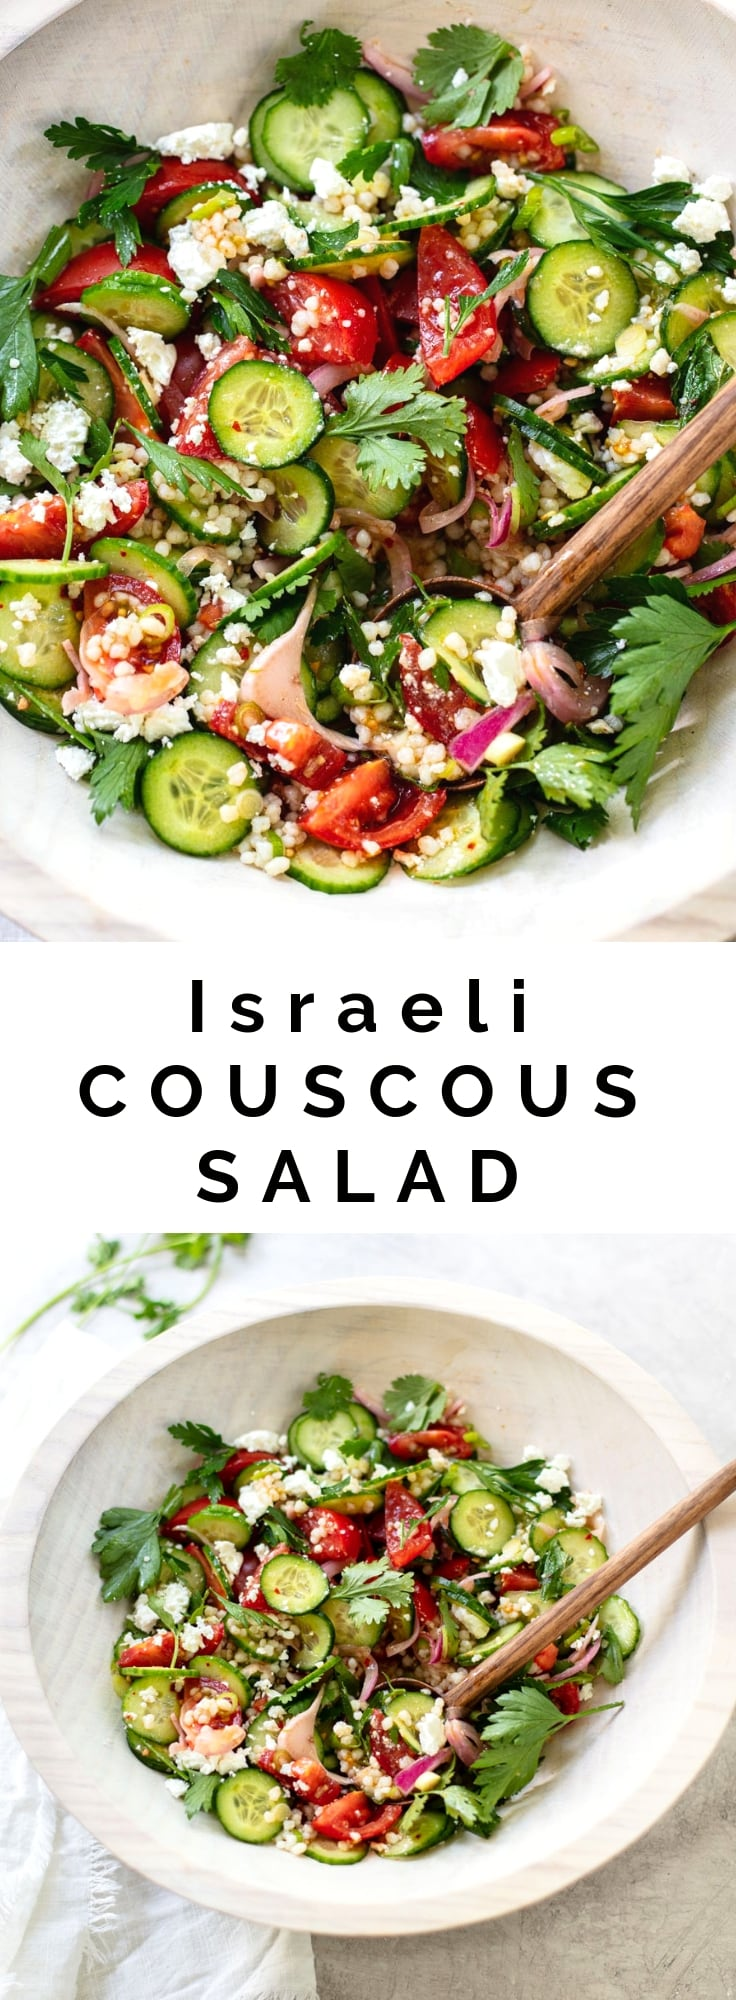 Israeli Couscous Salad with Feta, Cucumber and Tomato